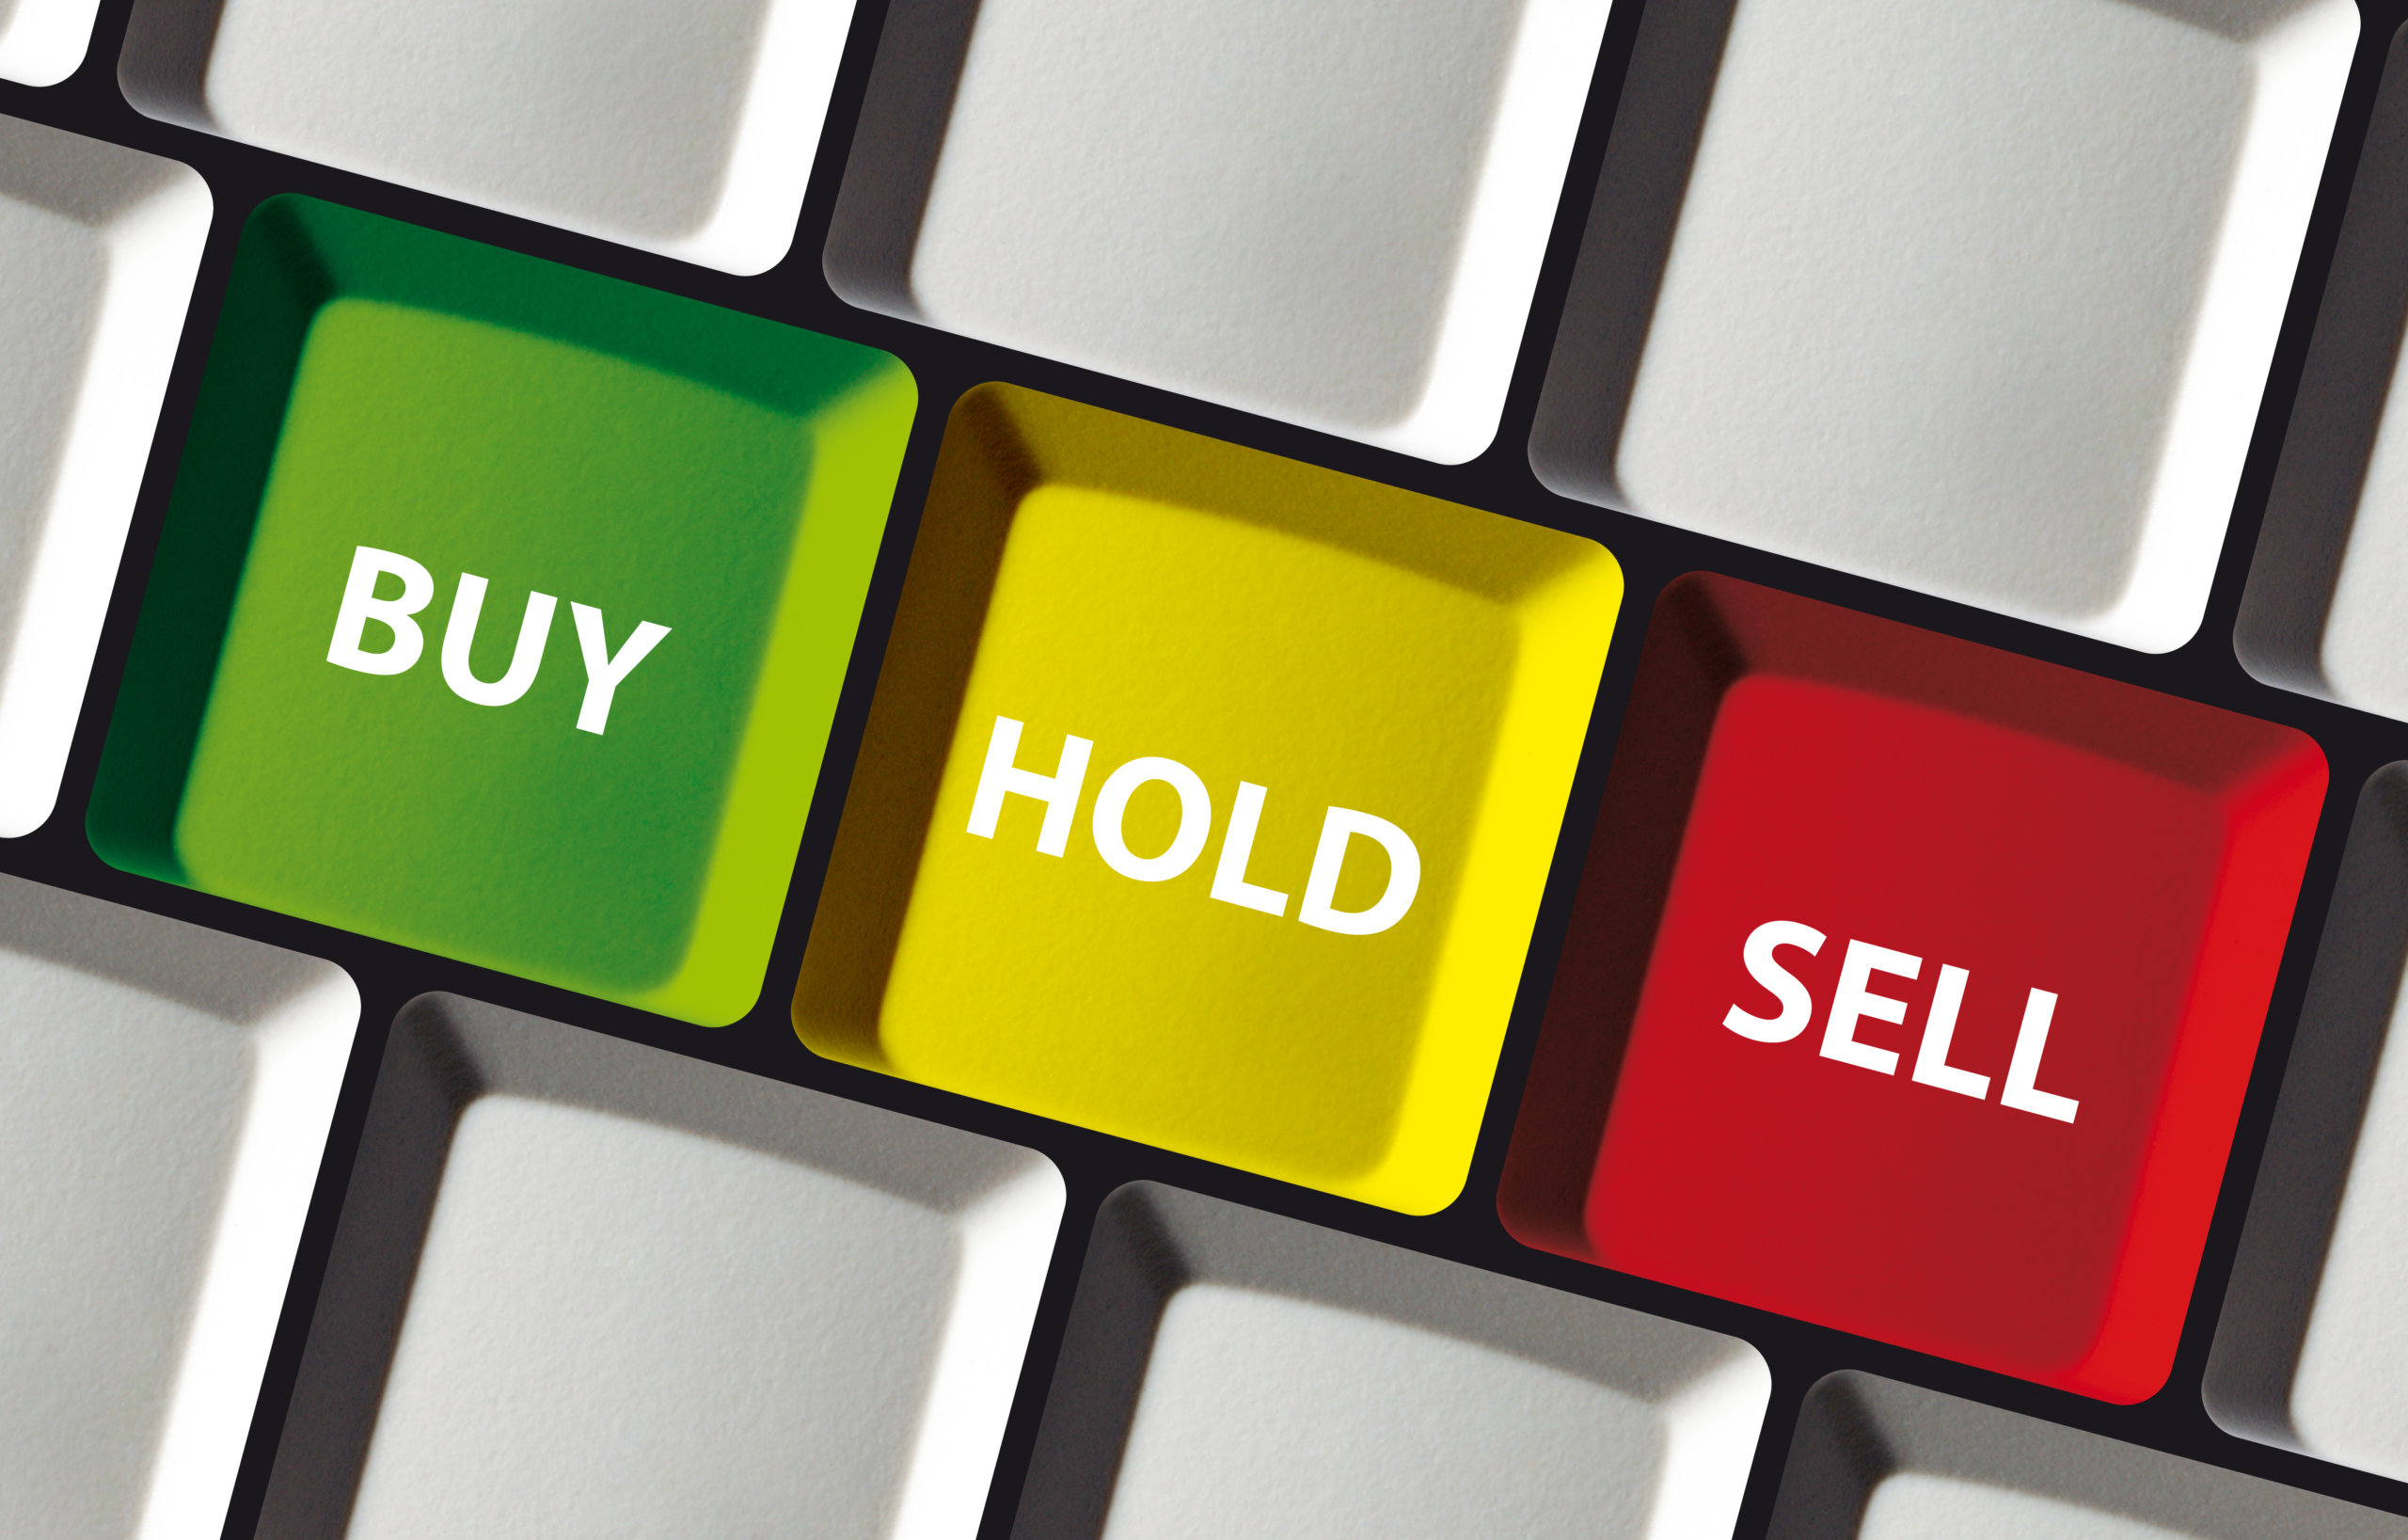 Buy Hold Sell – Healthy strategies for infected markets